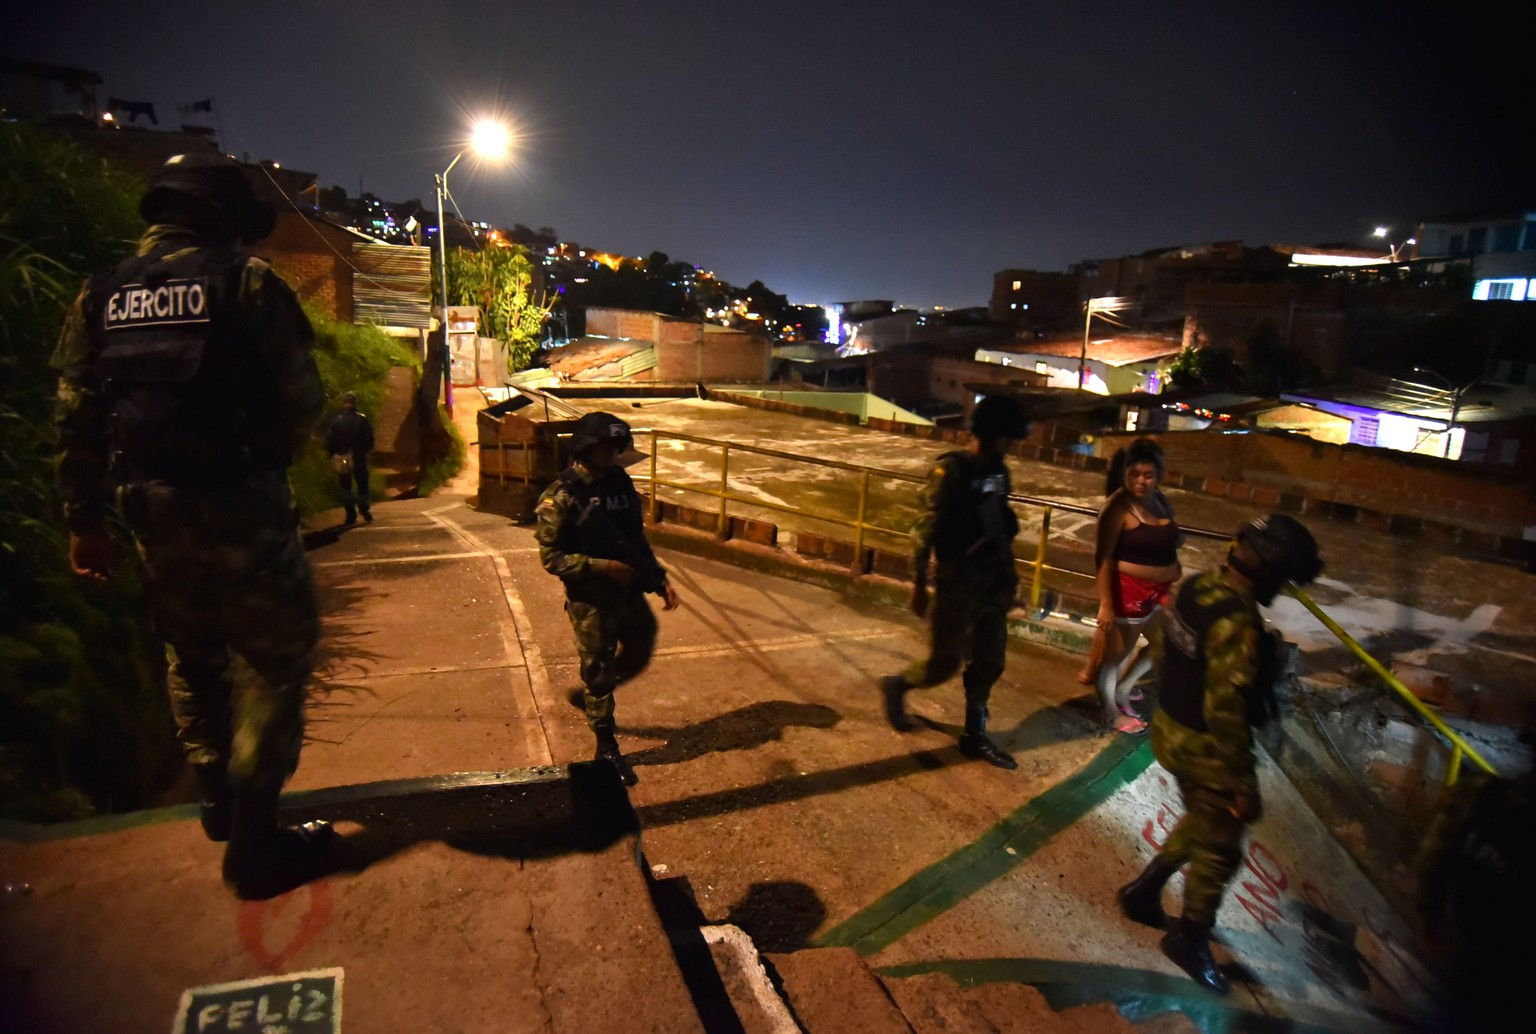 epa06388416 Soldiers of the Colombian Army participate in a security operation in the Siloe neighborhood in Cali, Colombia, 13 December 2017. Cali's Mayor, Maurice Armitage, asked the Army to increase the security controls in the city to reduce violence.  EPA/ERNESTO GUZMAN JR